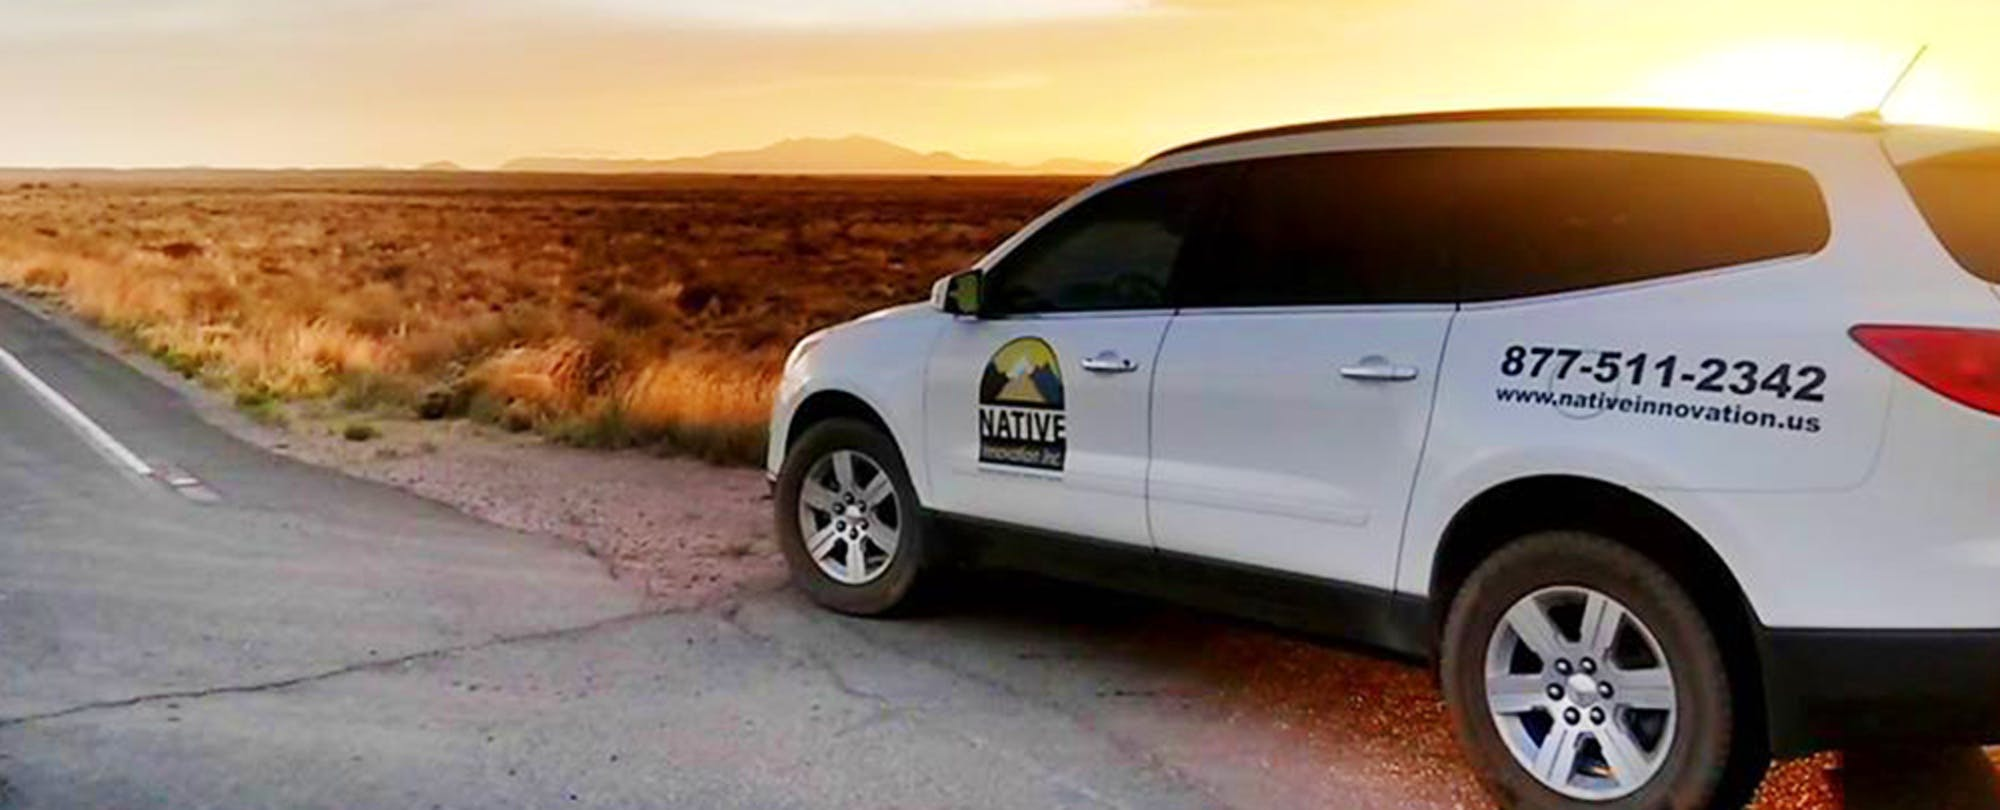 How Edtech Startup 'Native Innovation' Goes the Extra 300 Miles For Navajo Customers